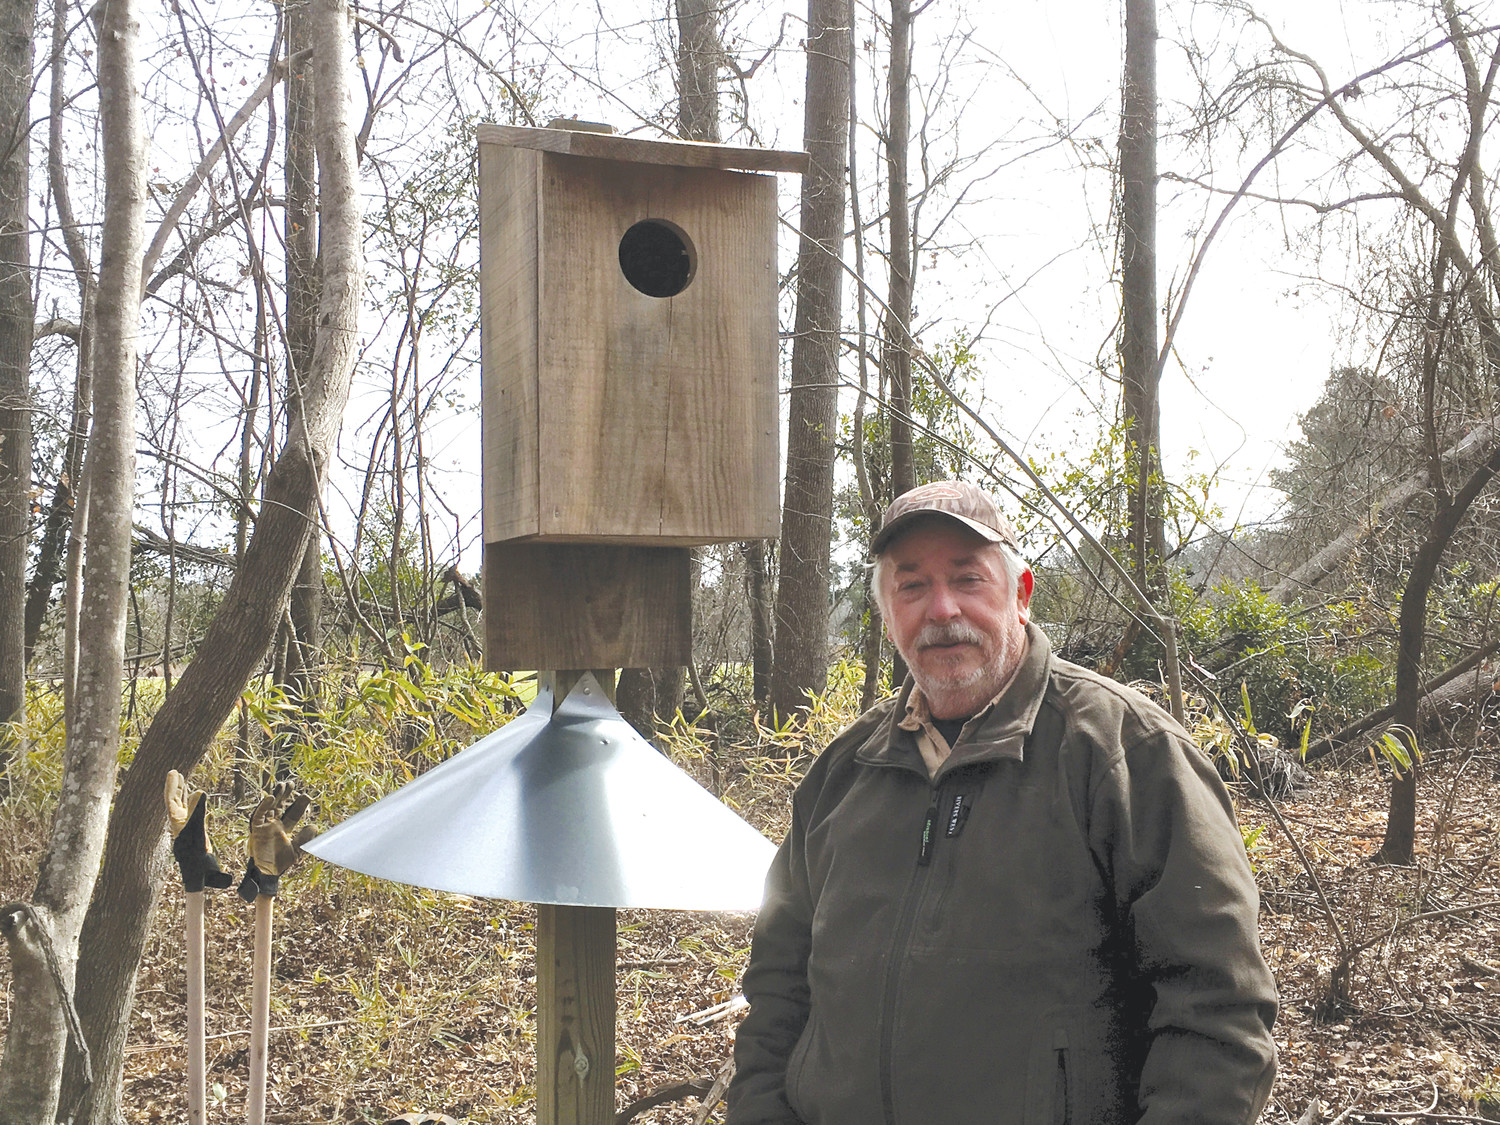 PHOTO PROVIDEDDan Geddings is seen at a newly installed wood duck nest box.